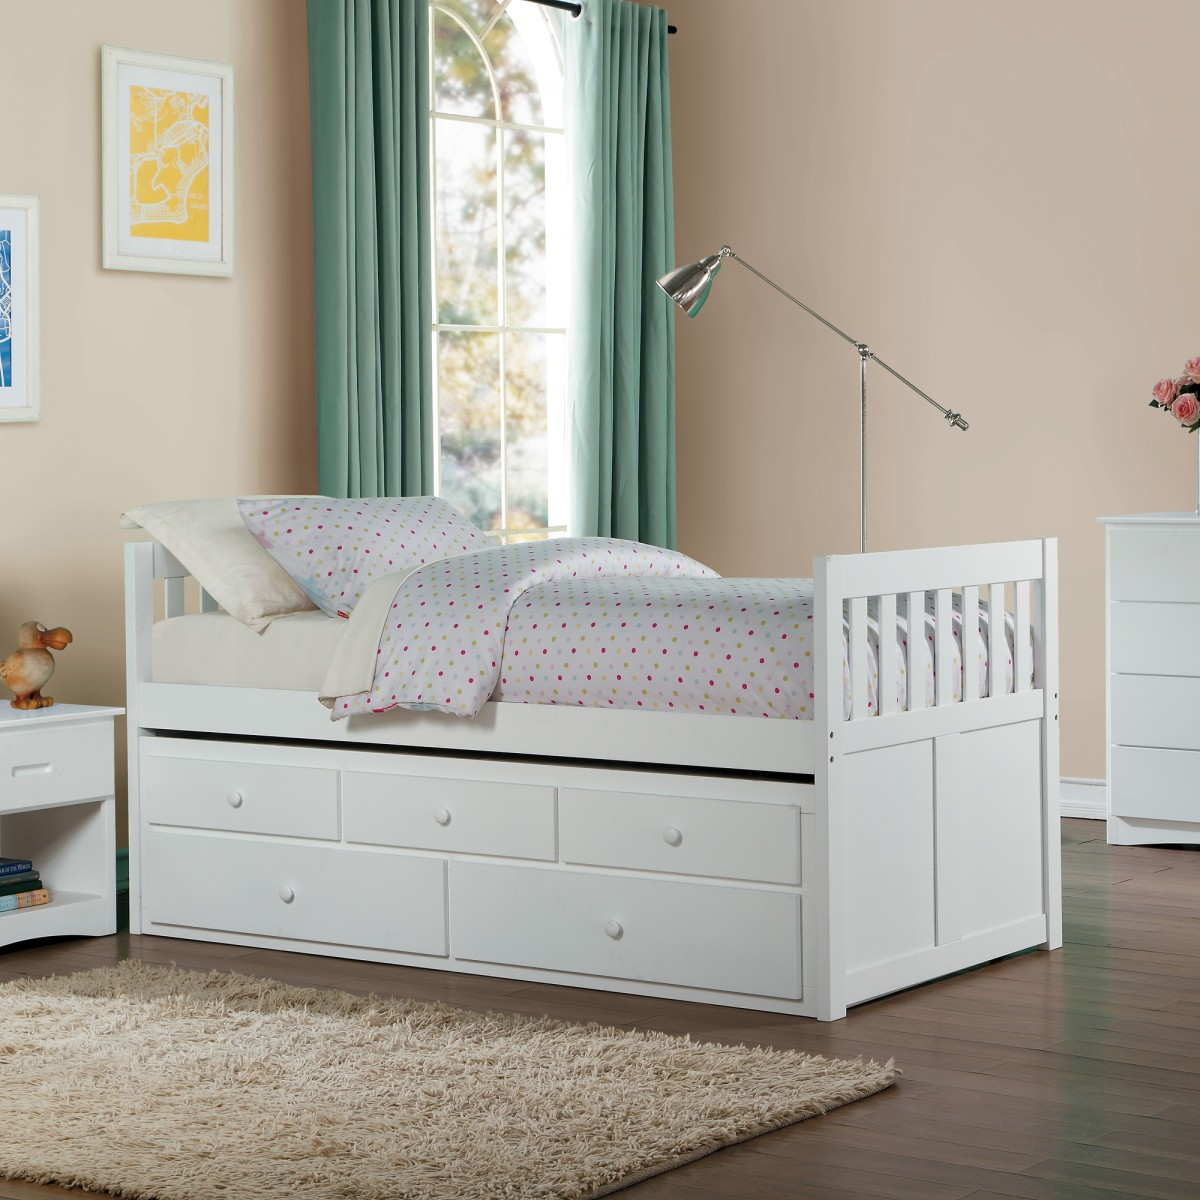 B2053prw 1 Twin Twin Trundle Bed With Two Storage Drawers